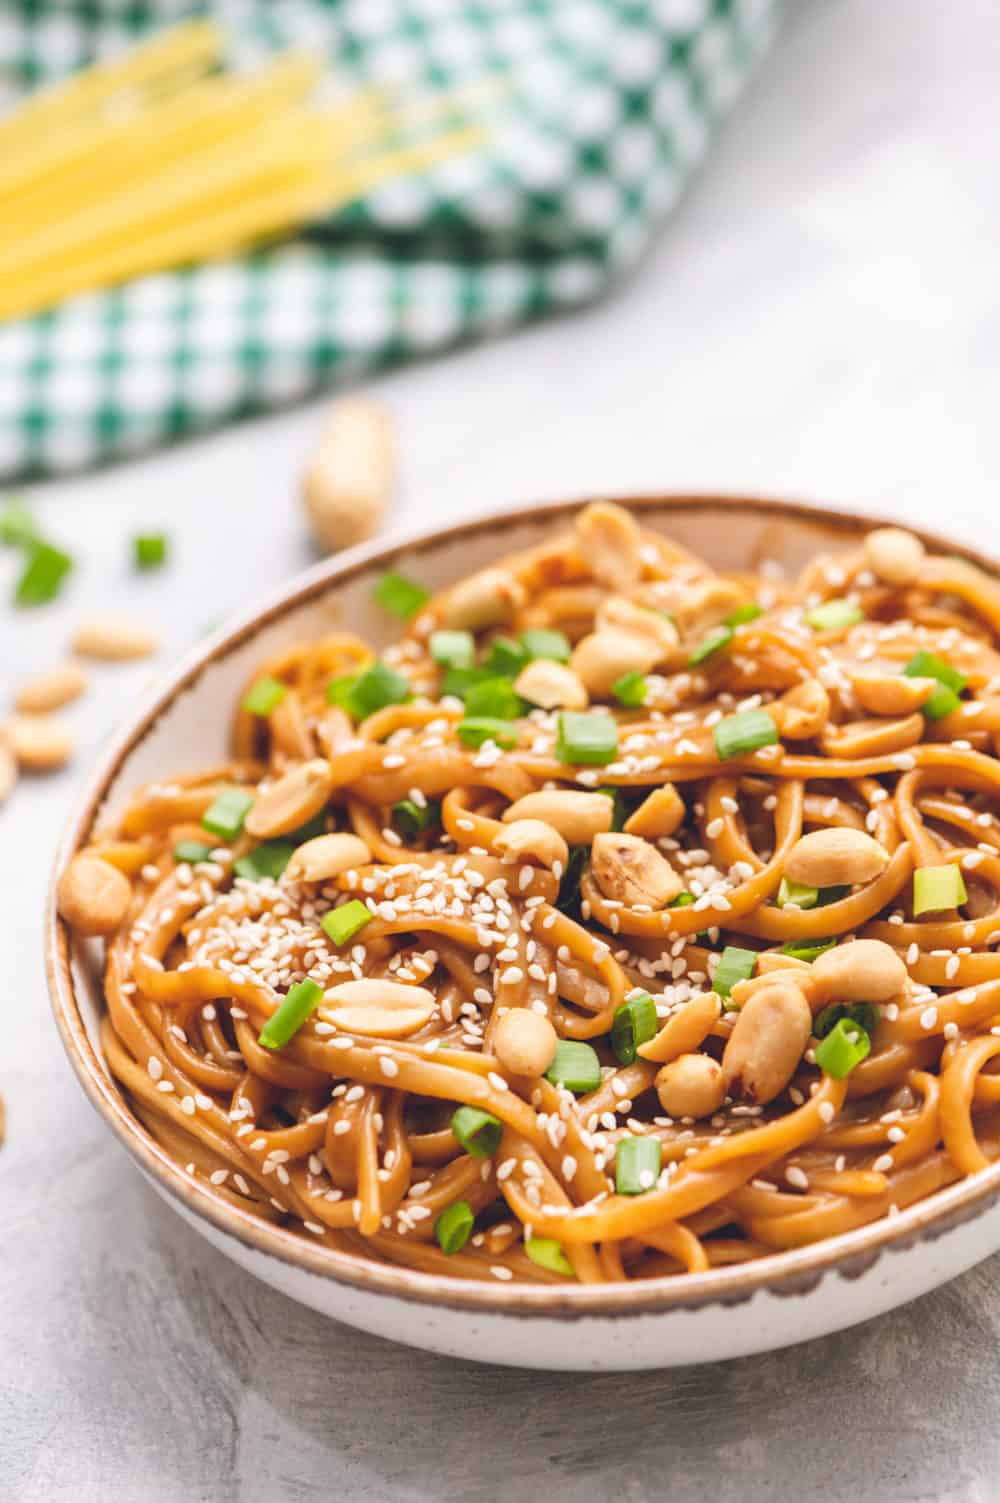 Thai peanut sesame noodles in a bowl with scallops and sesame seeds as garnish.